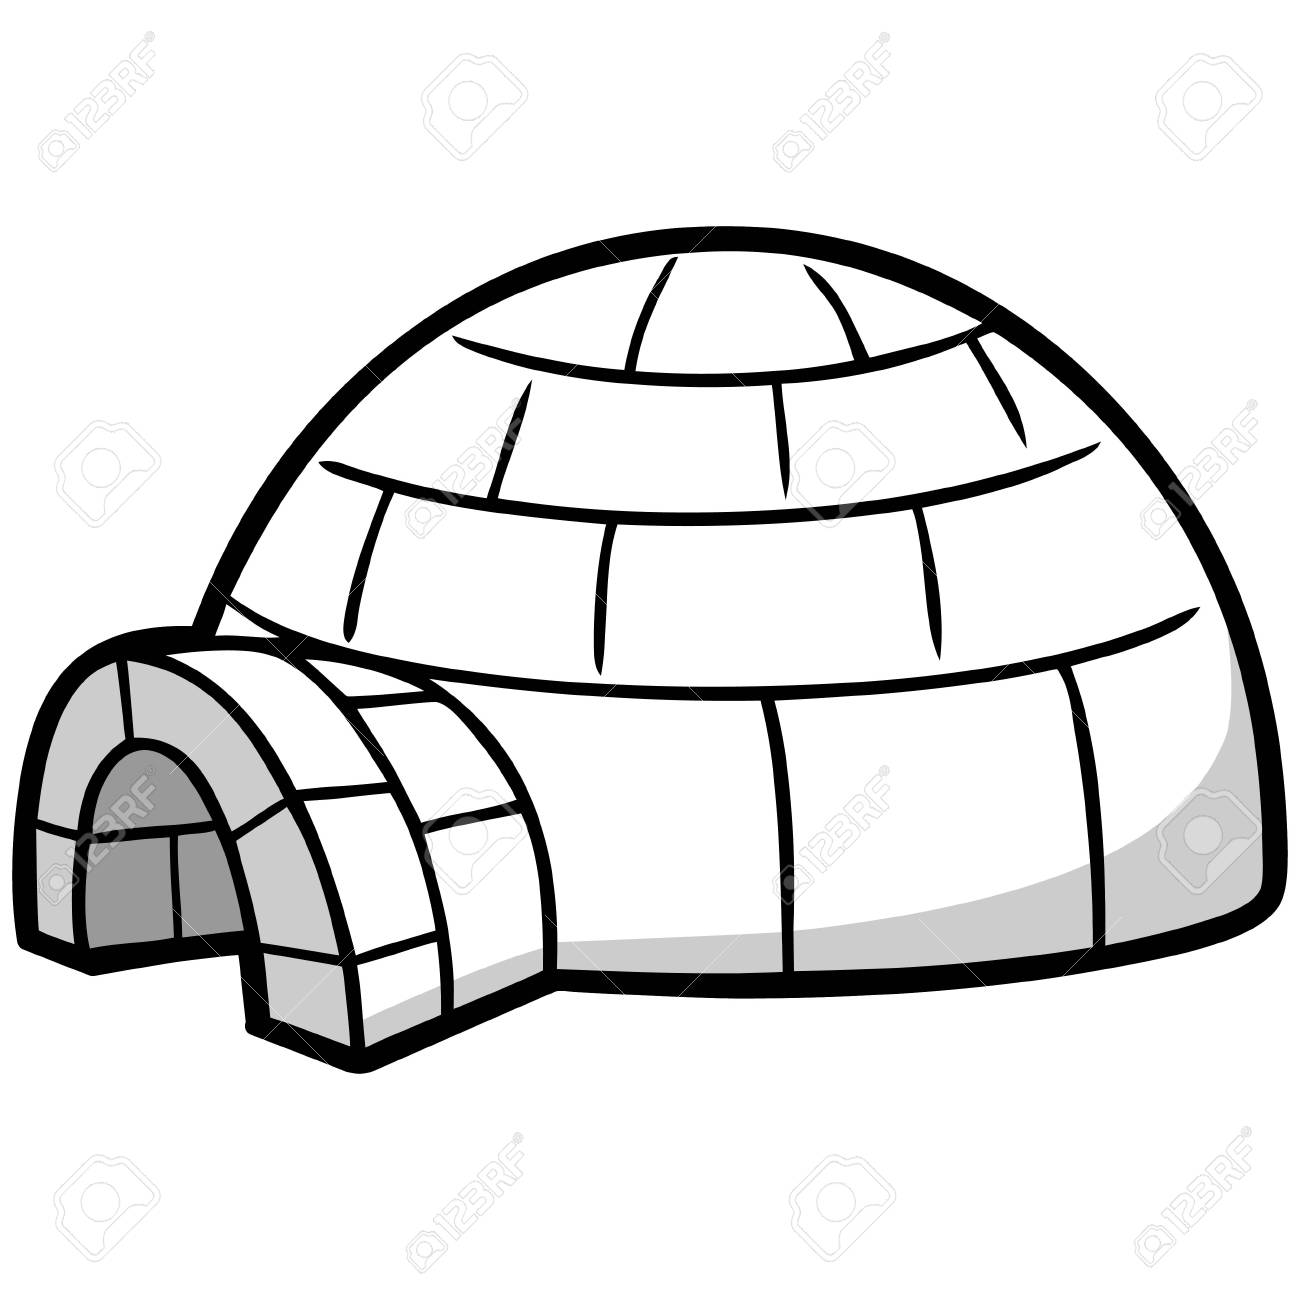 igloo illustration royalty free cliparts vectors and stock rh 123rf com igloo clipart black and white igloo clipart outline